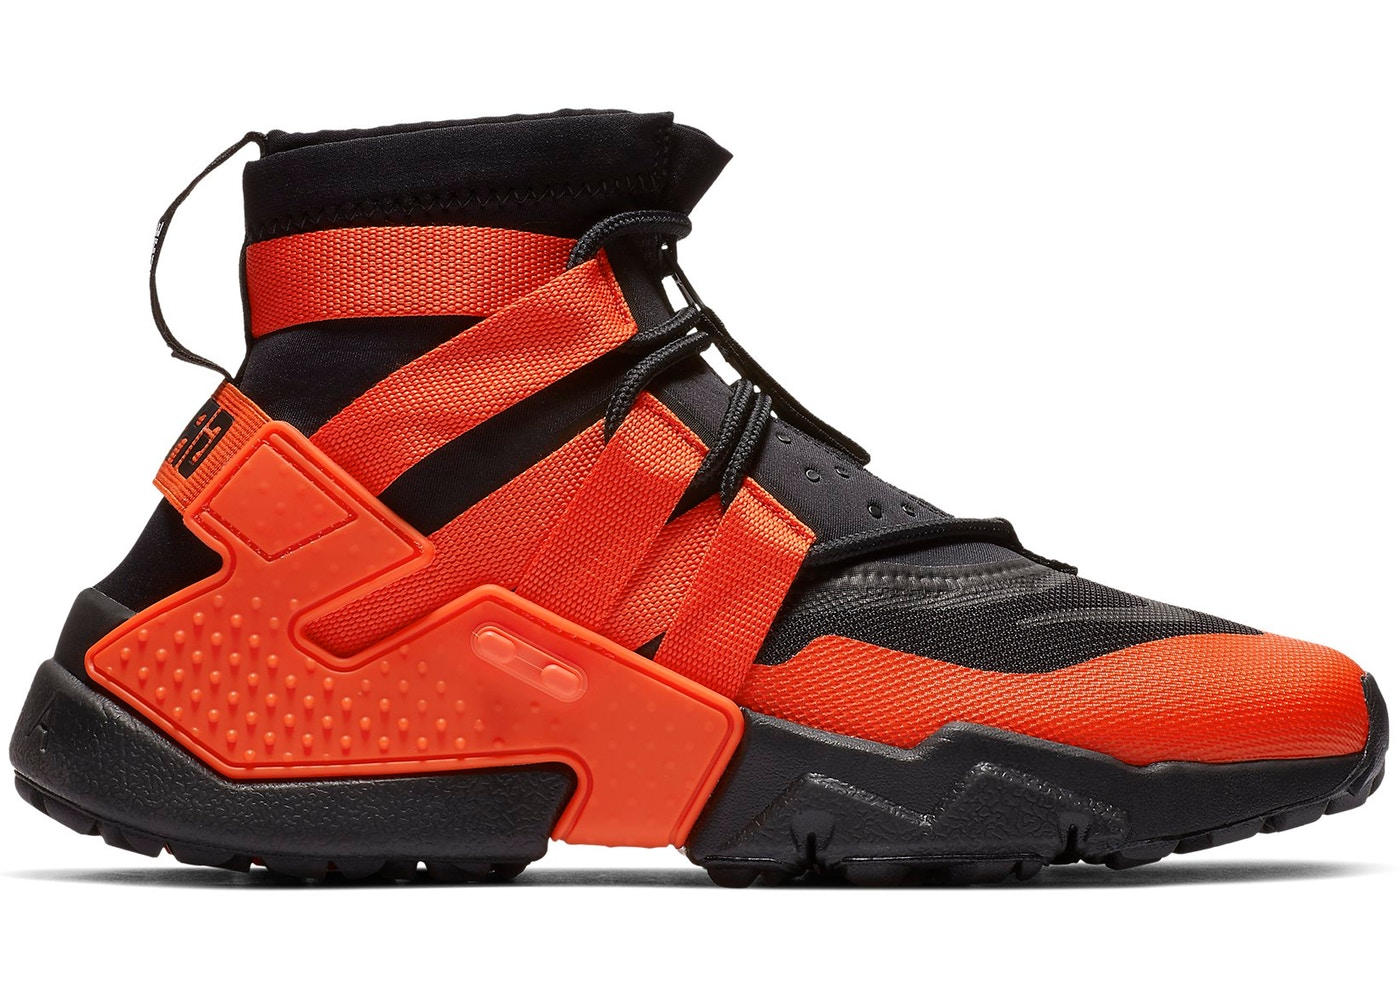 8f2160d64fb9b0 Air Huarache Gripp Black Team Orange - AO1730-001